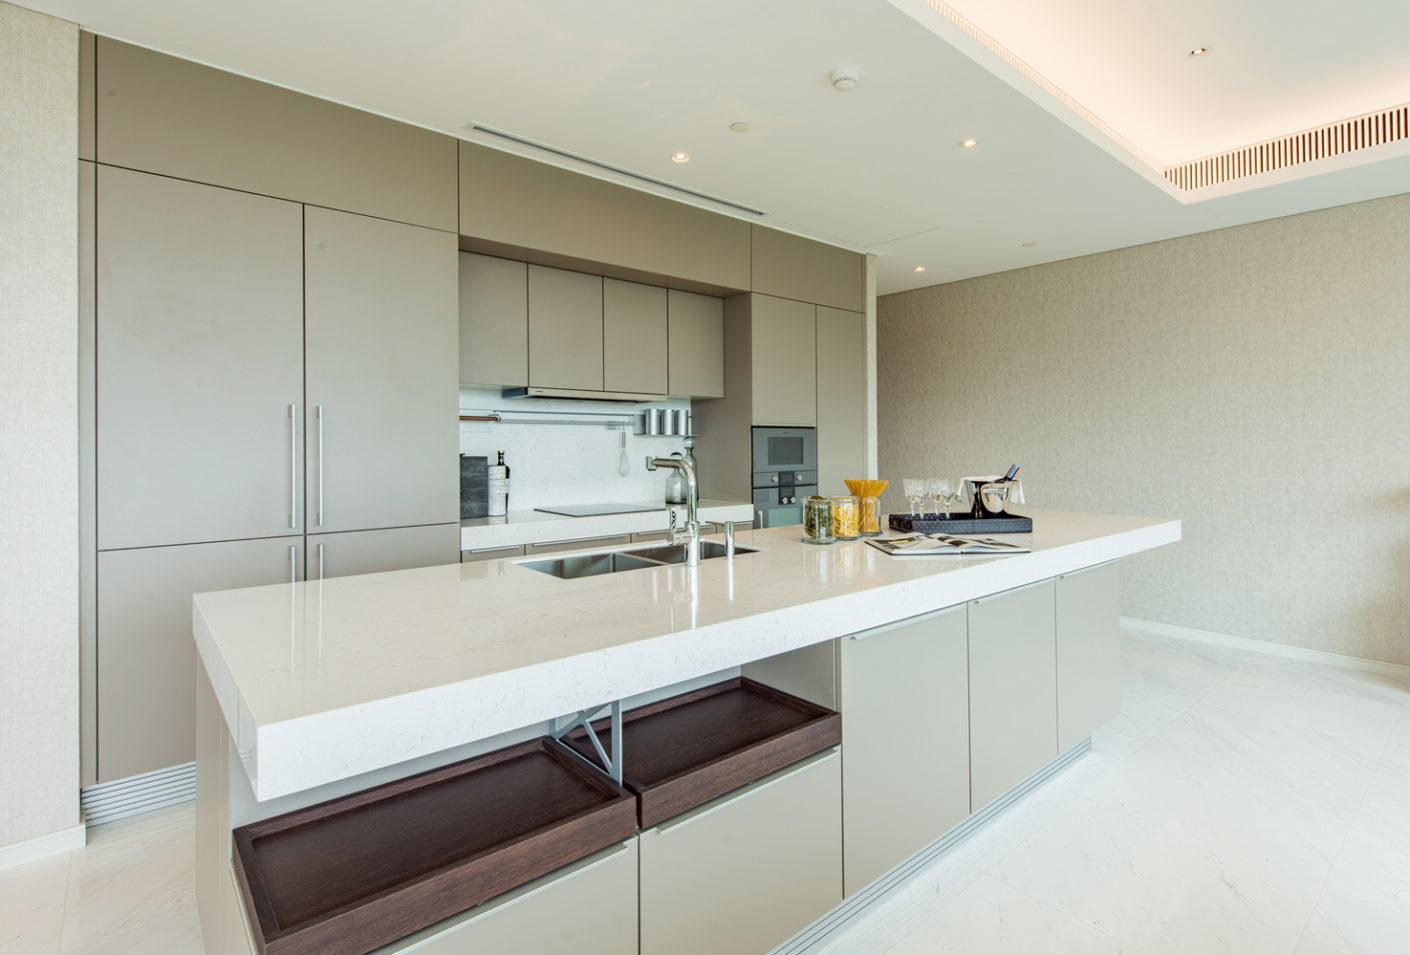 The project developers Siam Sindhorn Co Ltd. have selected sand-grey fronts for the cooking area in order to integrate it discreetly into the room concept.